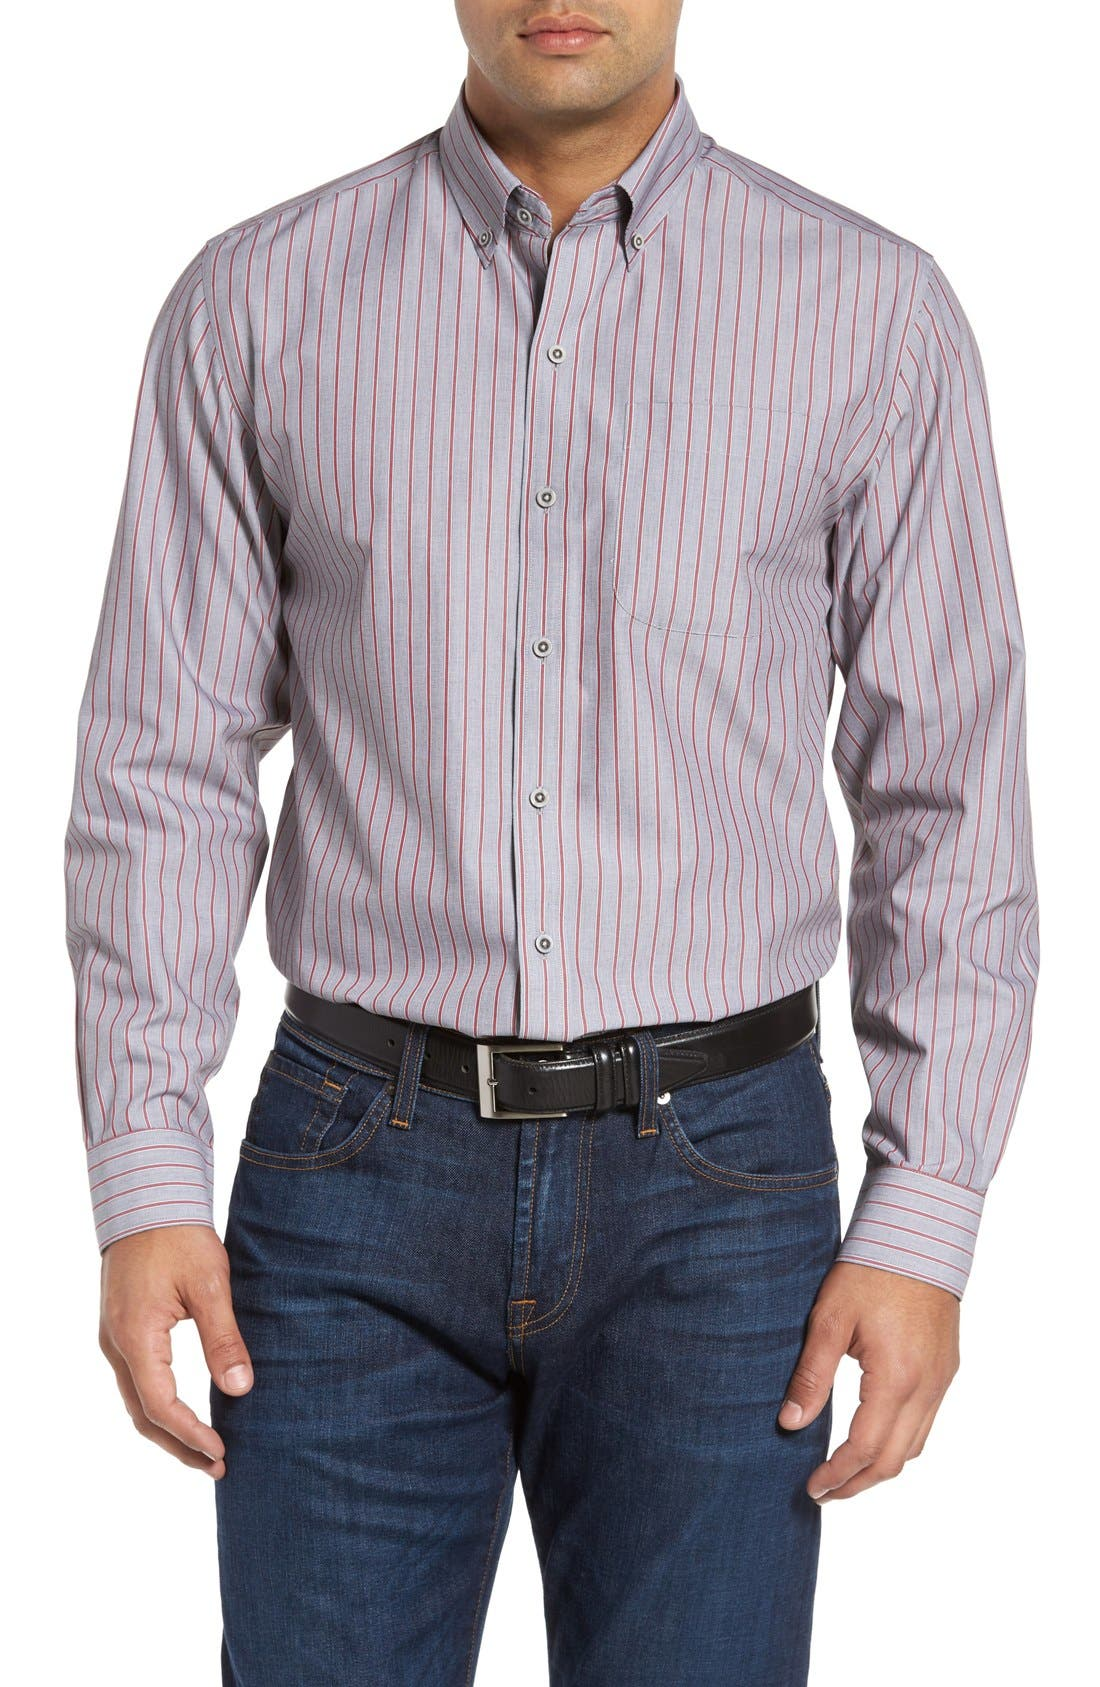 Main Image - Cutter & Buck 'Peak' Classic Fit Wrinkle Free Stripe Sport Shirt